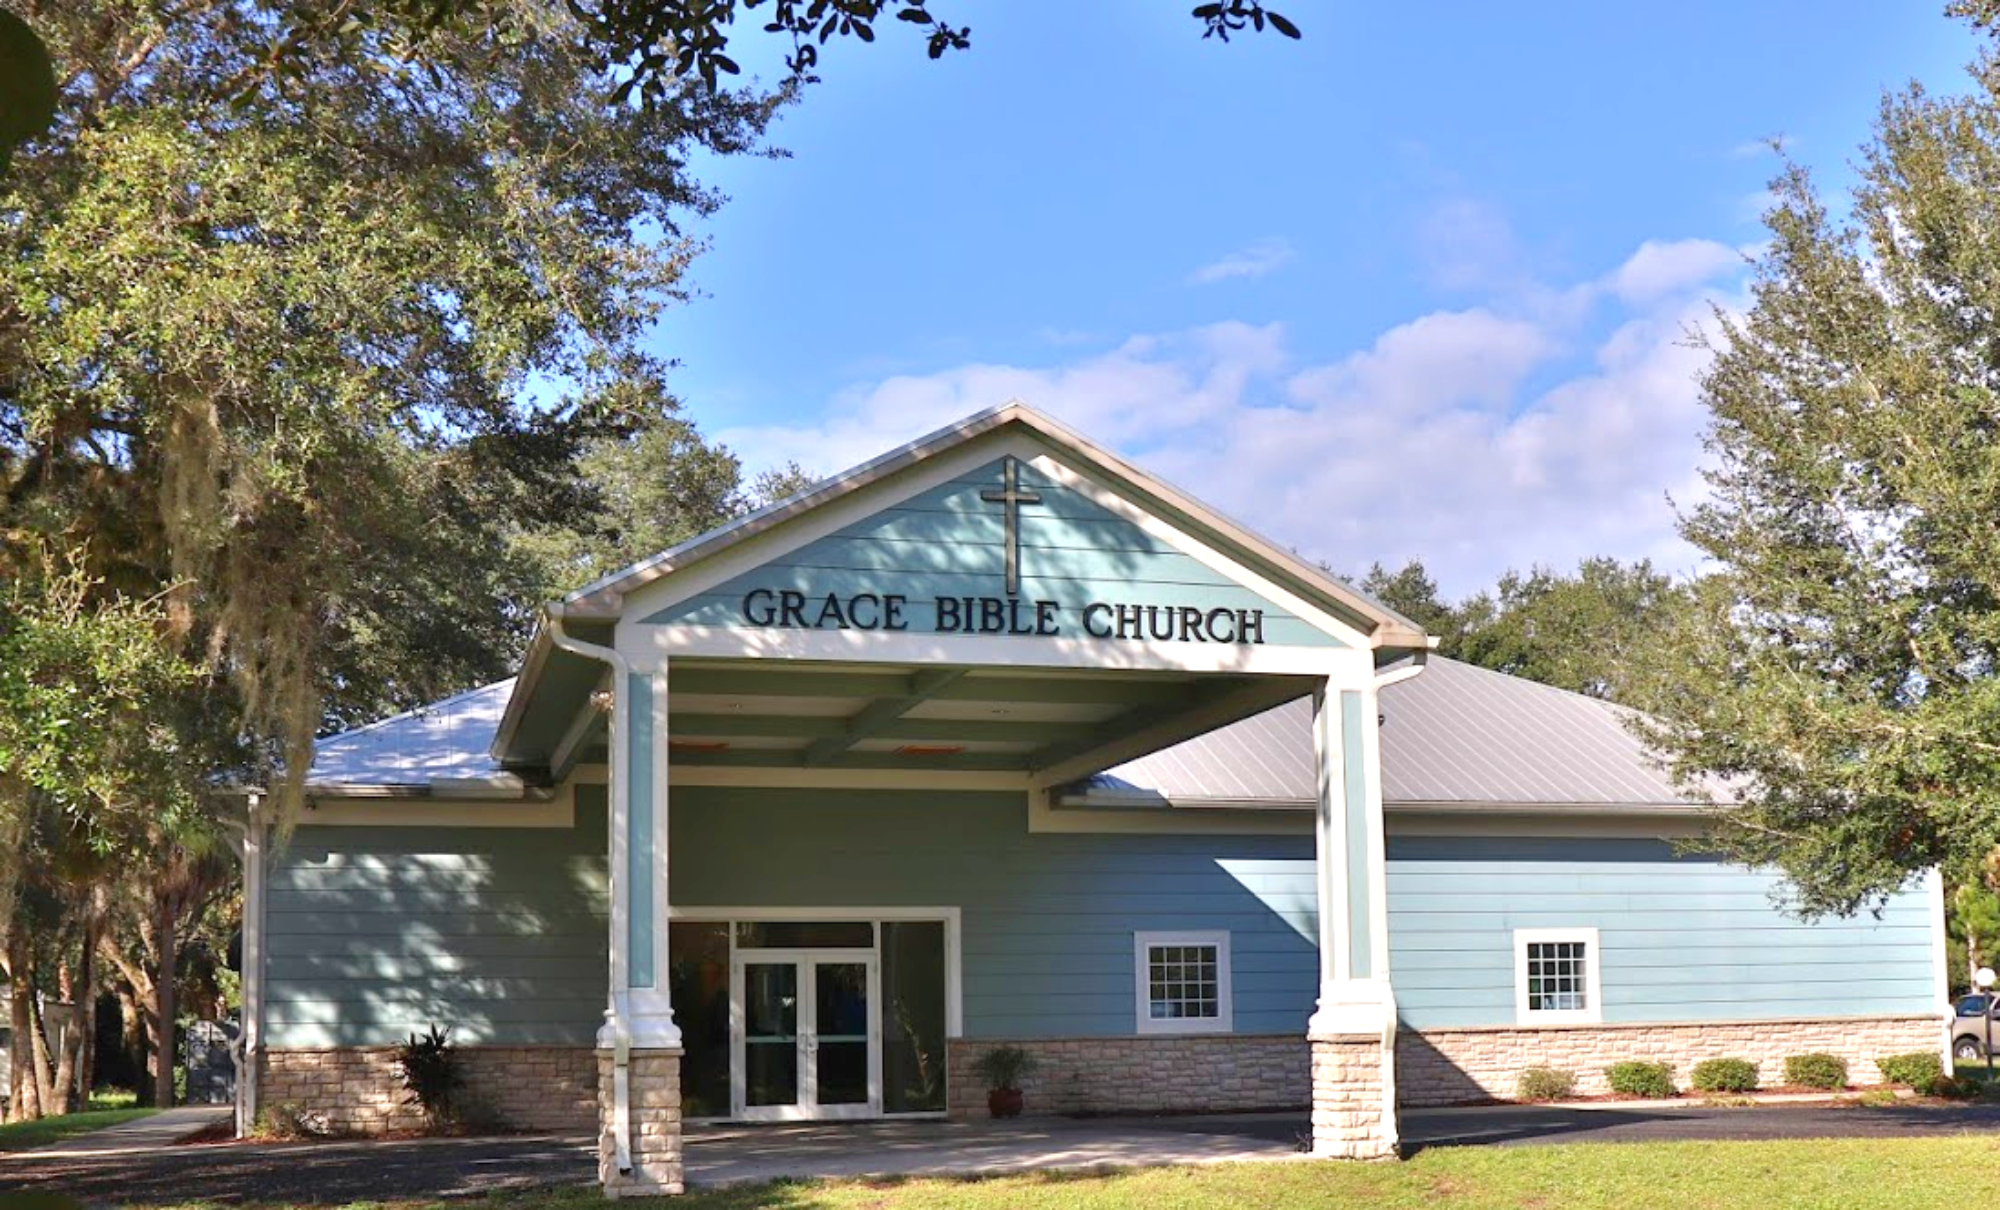 Grace Bible Church of Port Charlotte, Florida